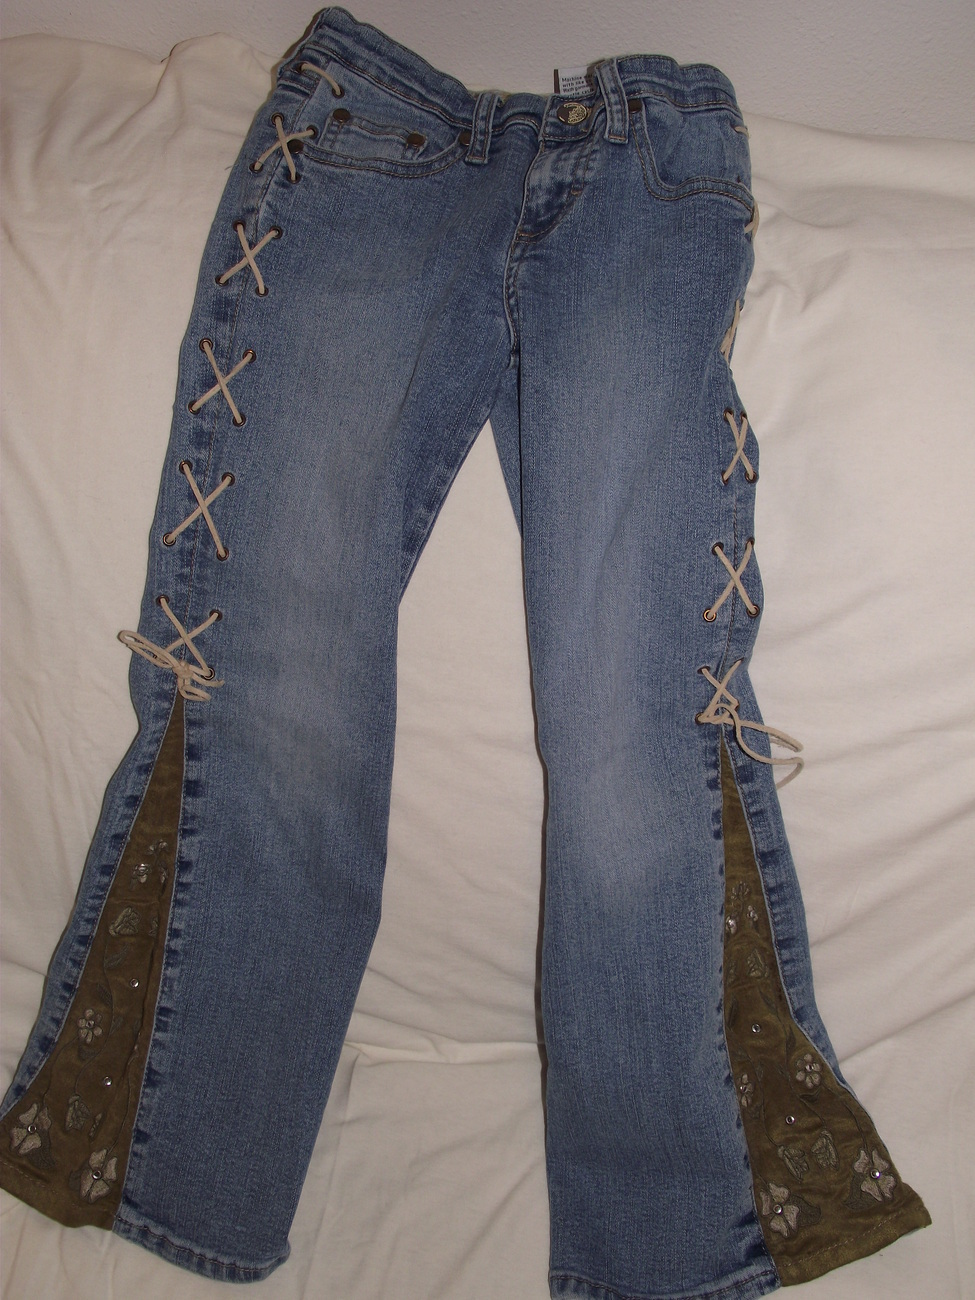 Girls size 7R jeans Mudd